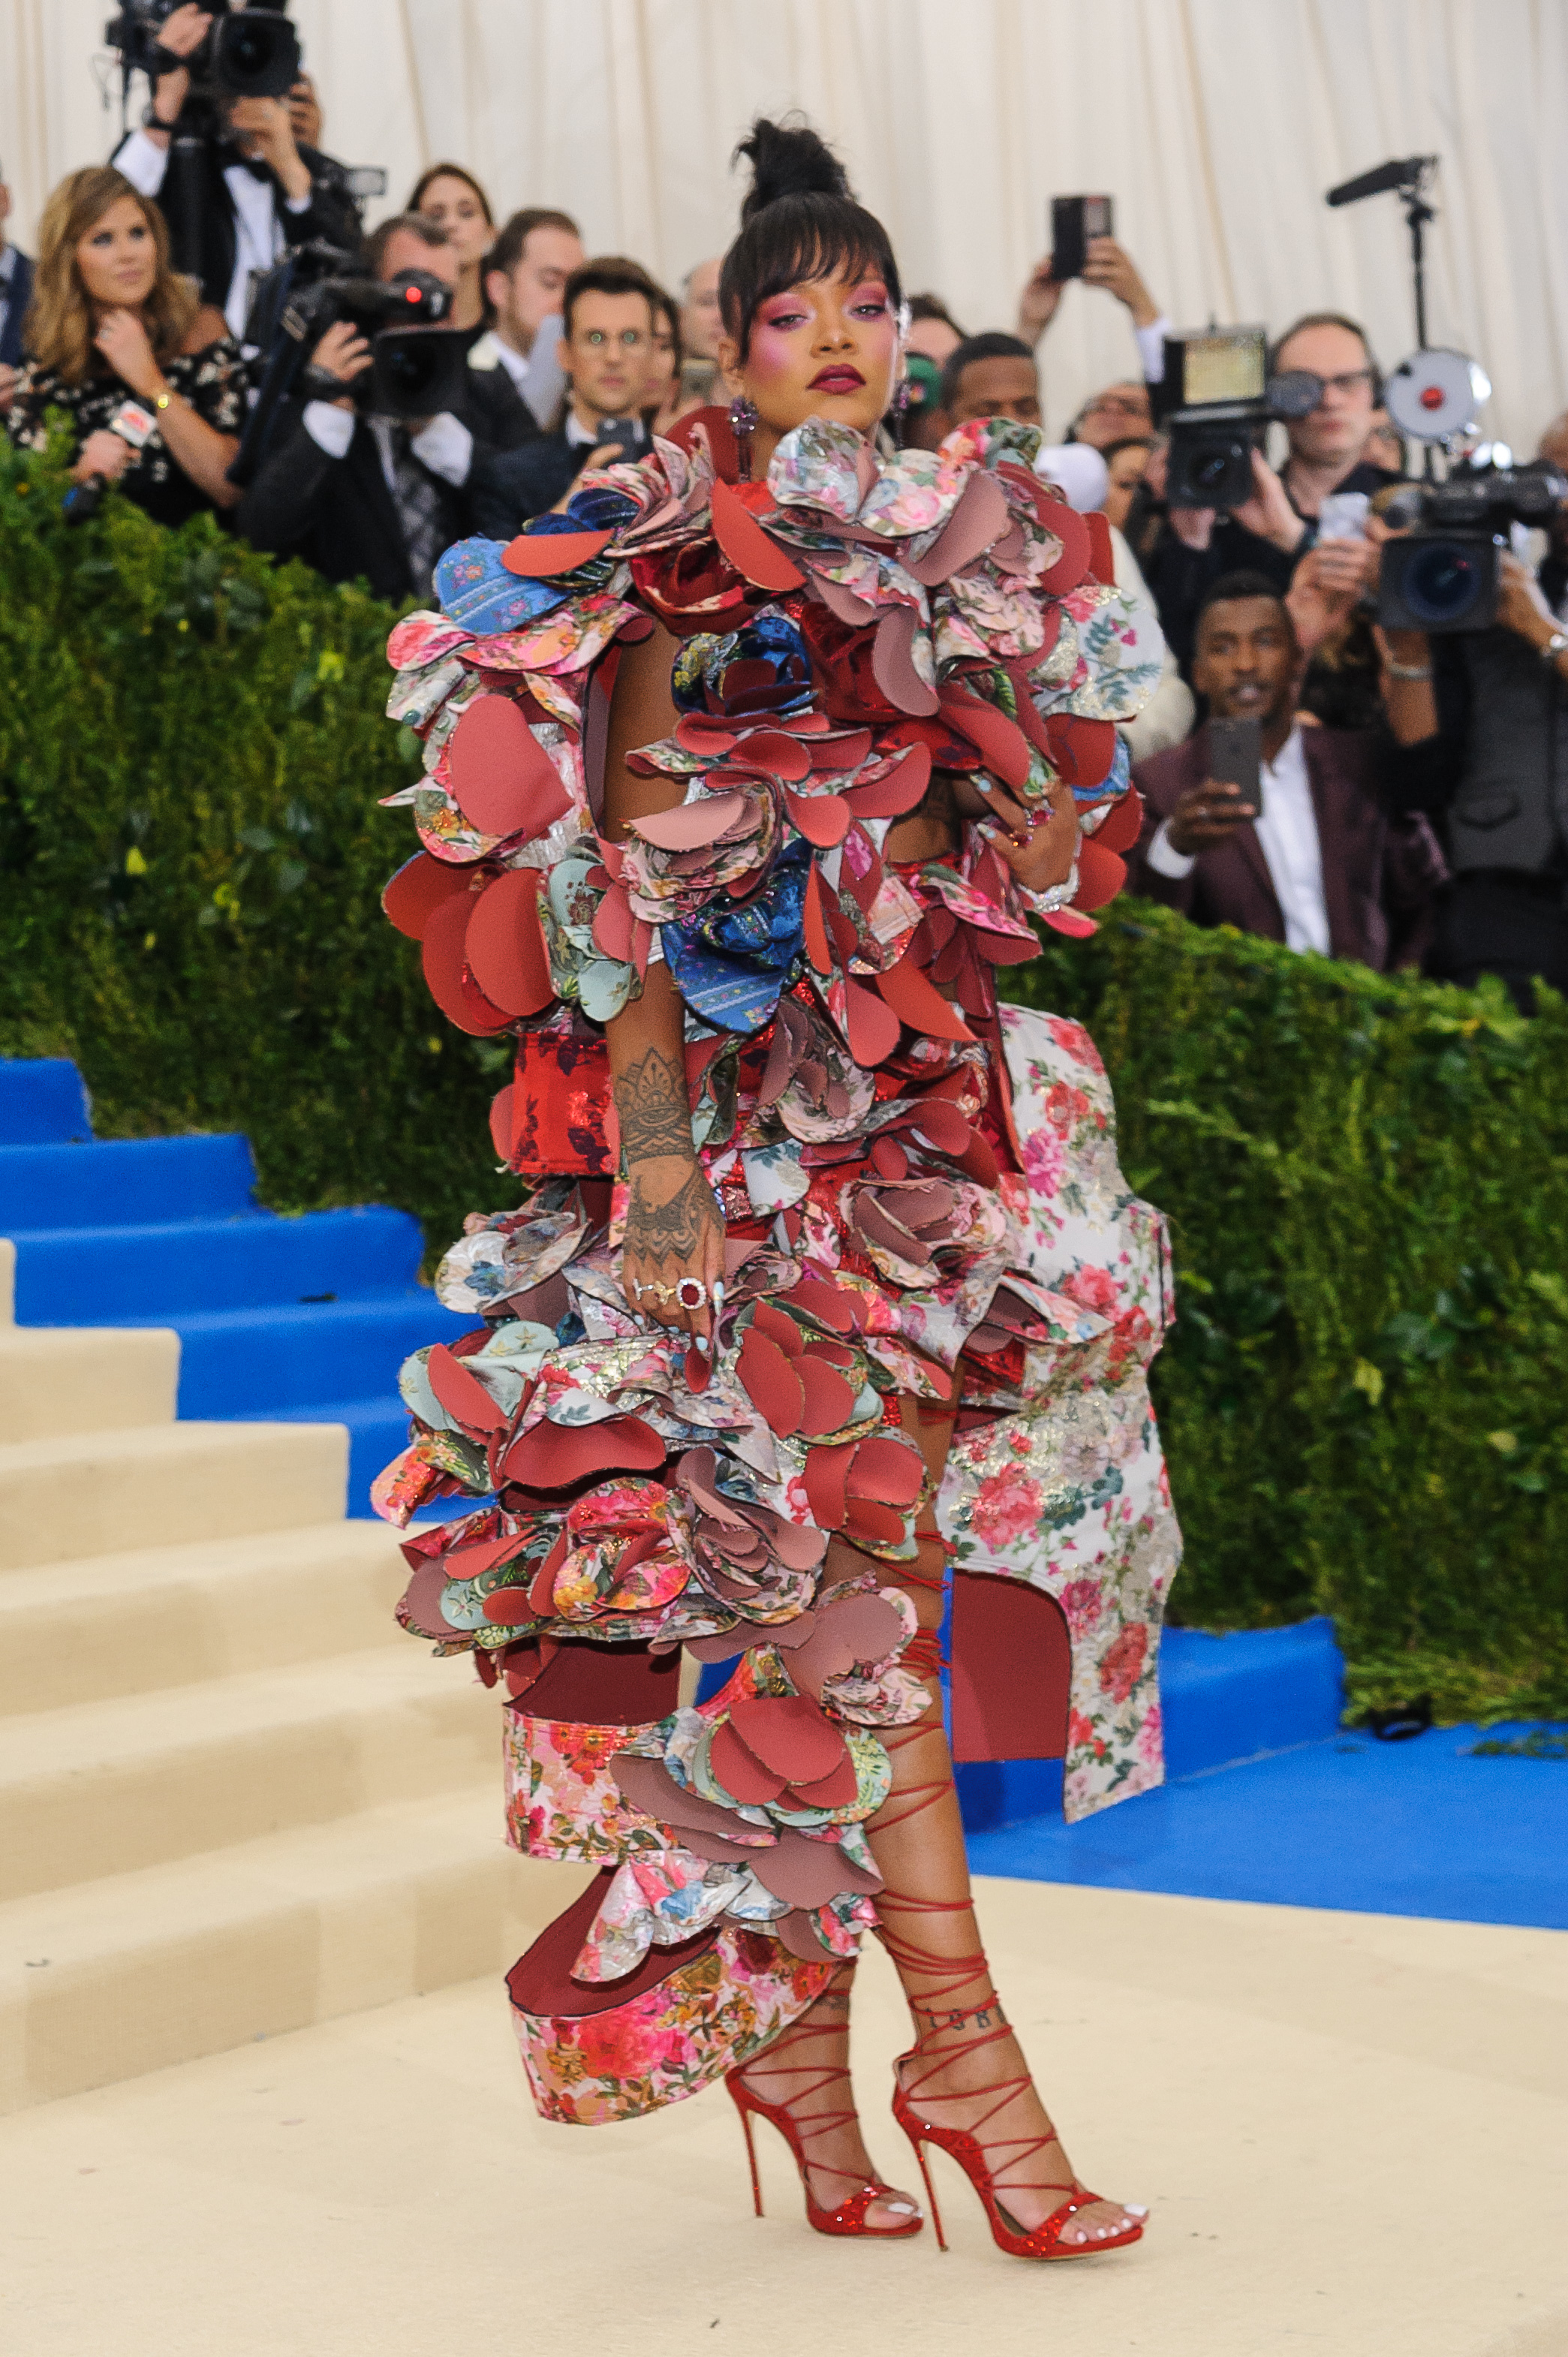 Metropolitan Costume Institute Benefit Gala: Rei Kawakubo/Comme des Garçons: Art of the In-Between at the Metropolitan Museum of Art  Featuring: Rihanna Where: New York, New York, United States When: 02 May 2017 Credit: WENN.com